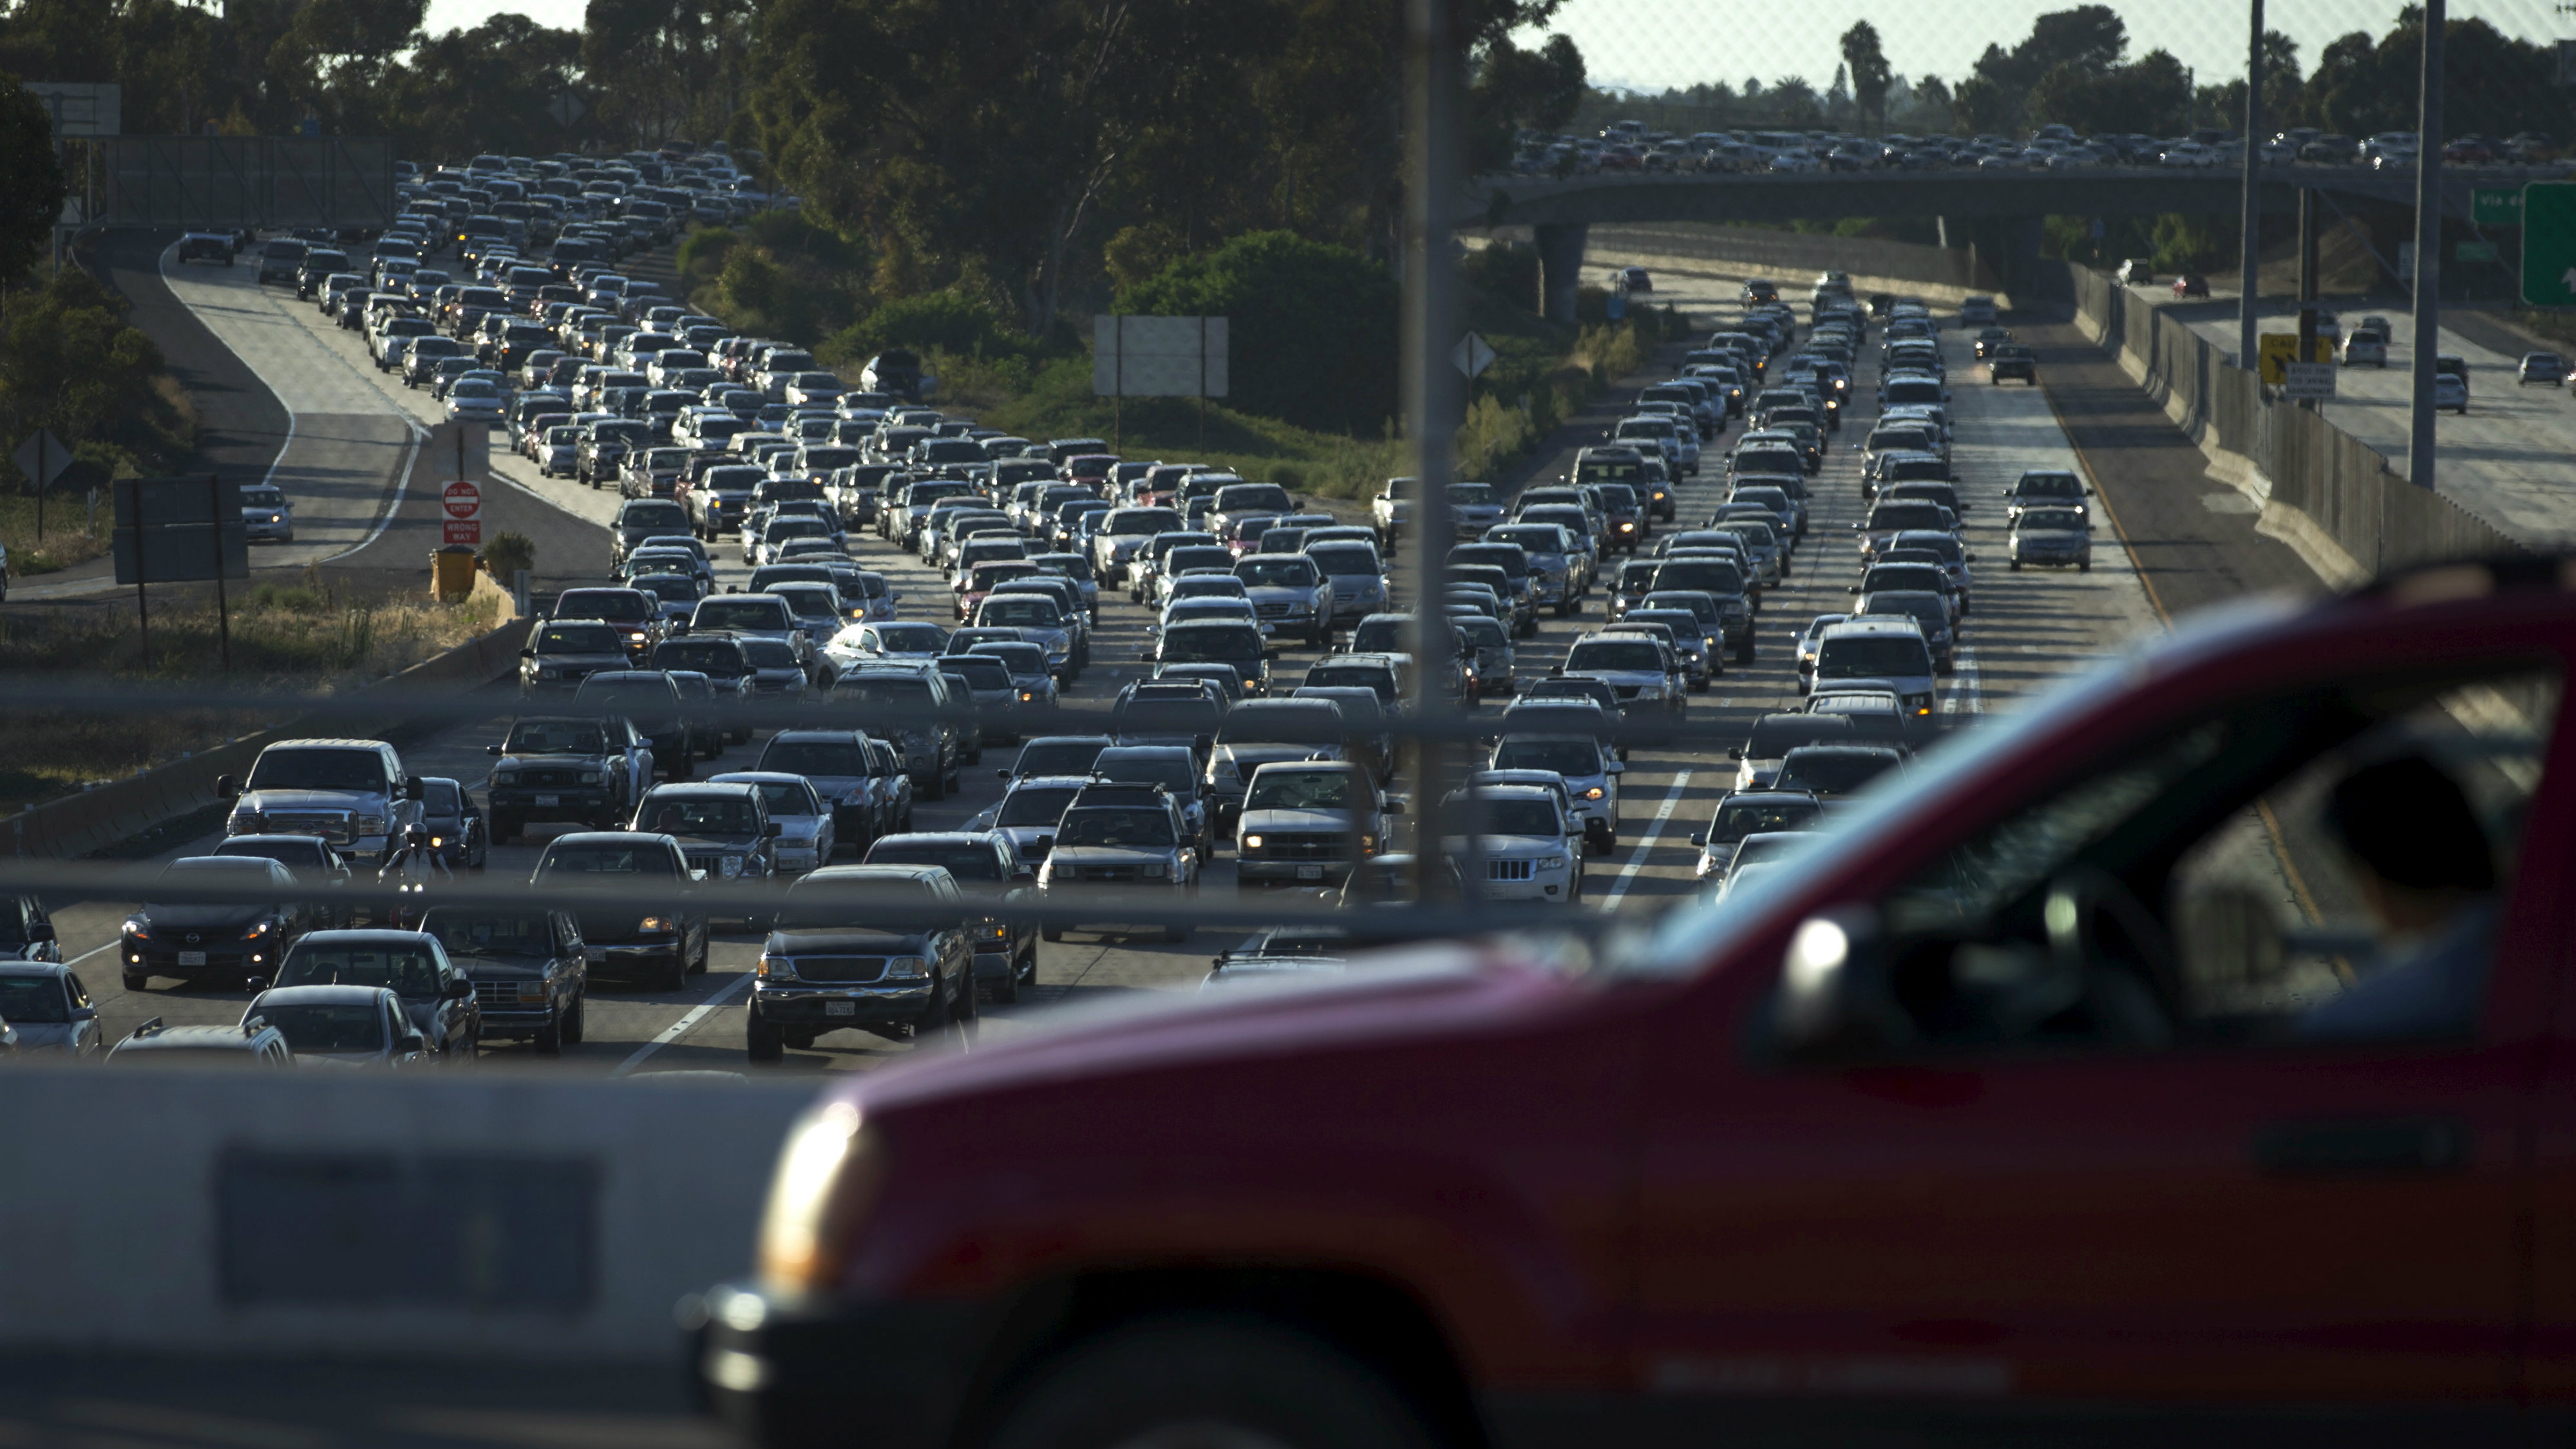 Traffic backs-up going south into Mexico in the border town of San Ysidro, California. September 3, 2015.